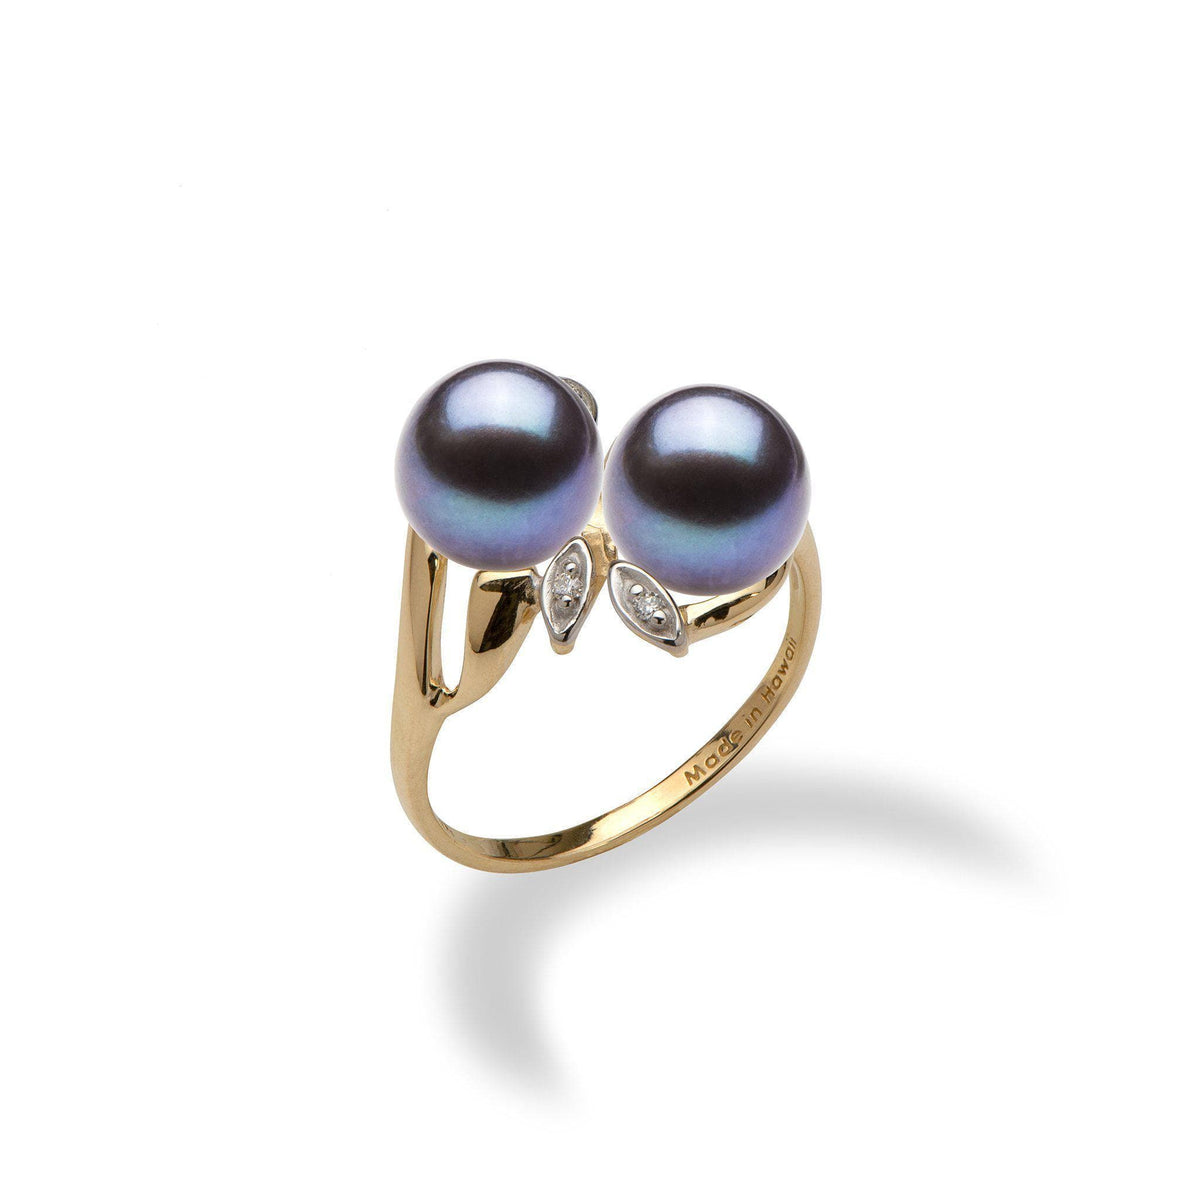 Sample picture with Black Pearls